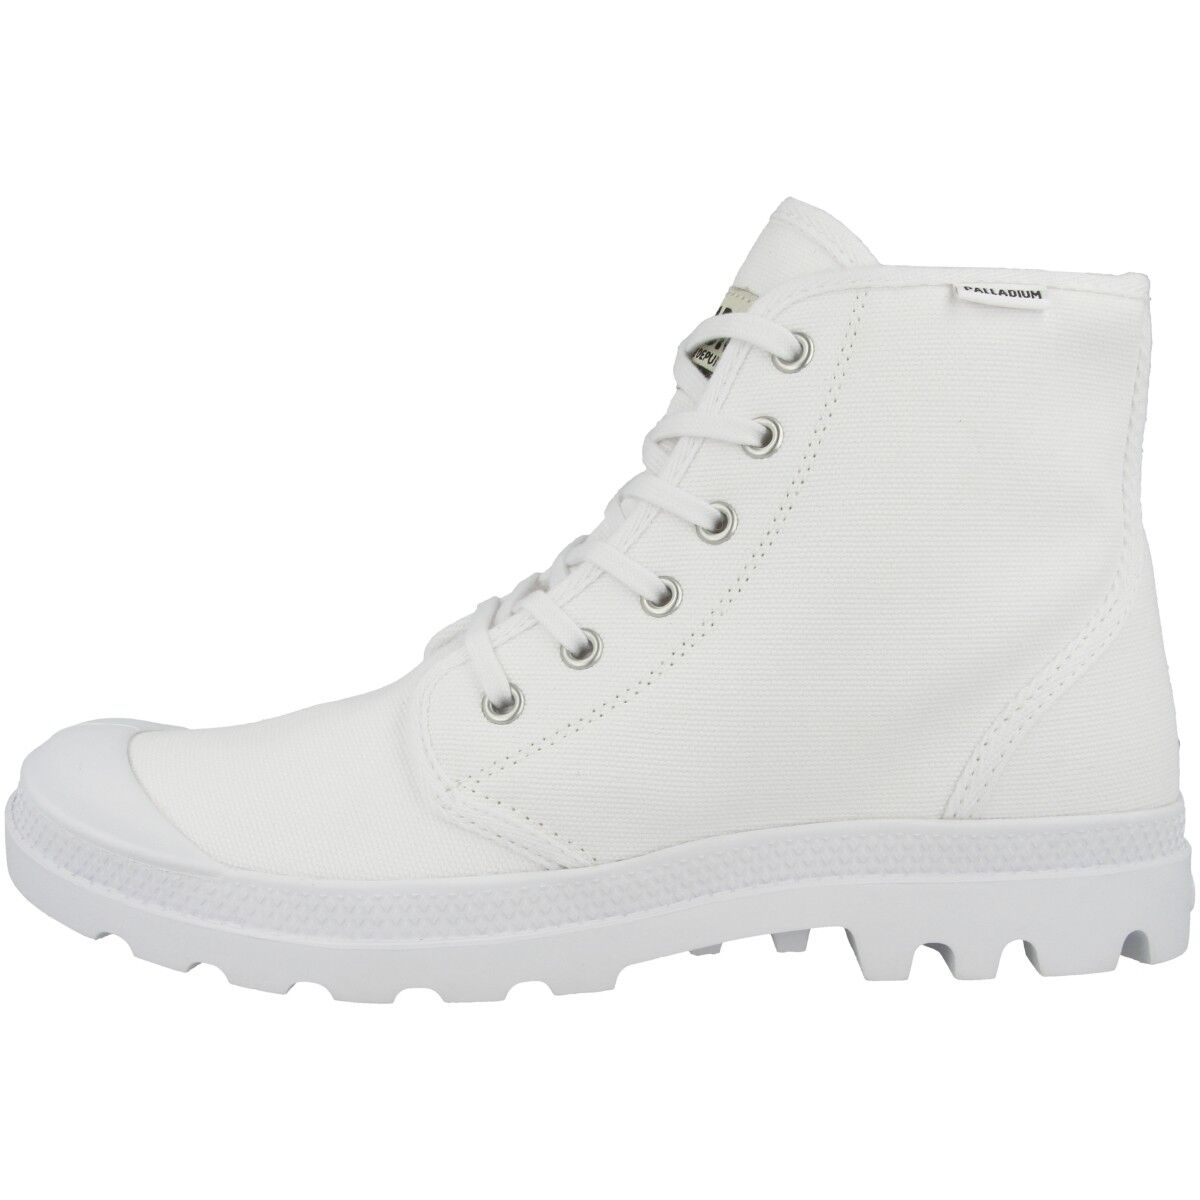 Palladium pampa Hi originale botas High Top unisex cortos 75349-101